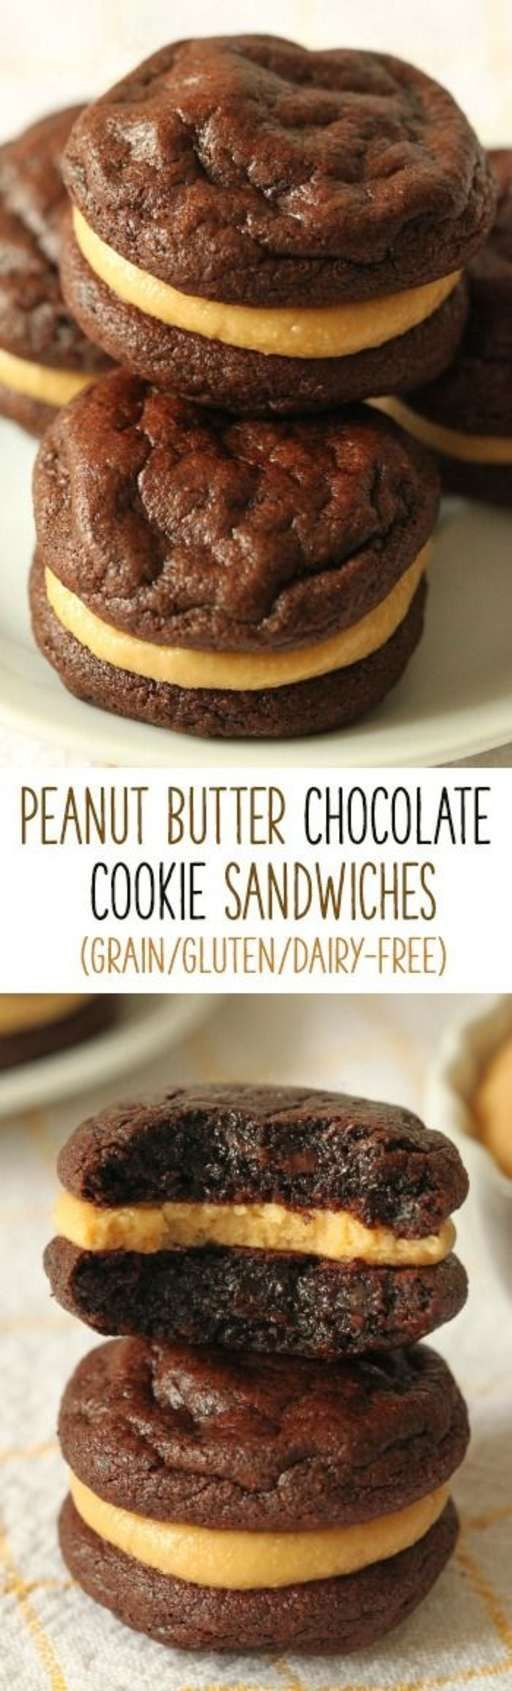 Dairy free peanut butter cookie recipes